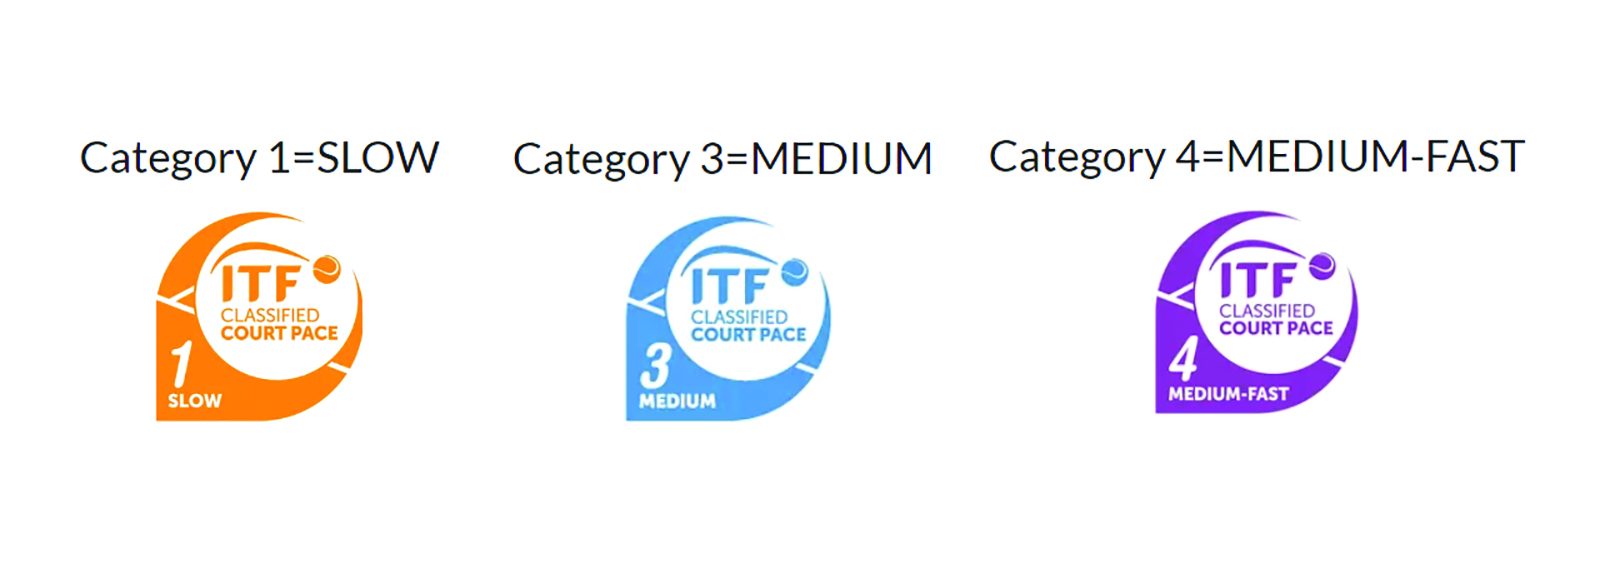 ITF categories_tennis_web.jpg